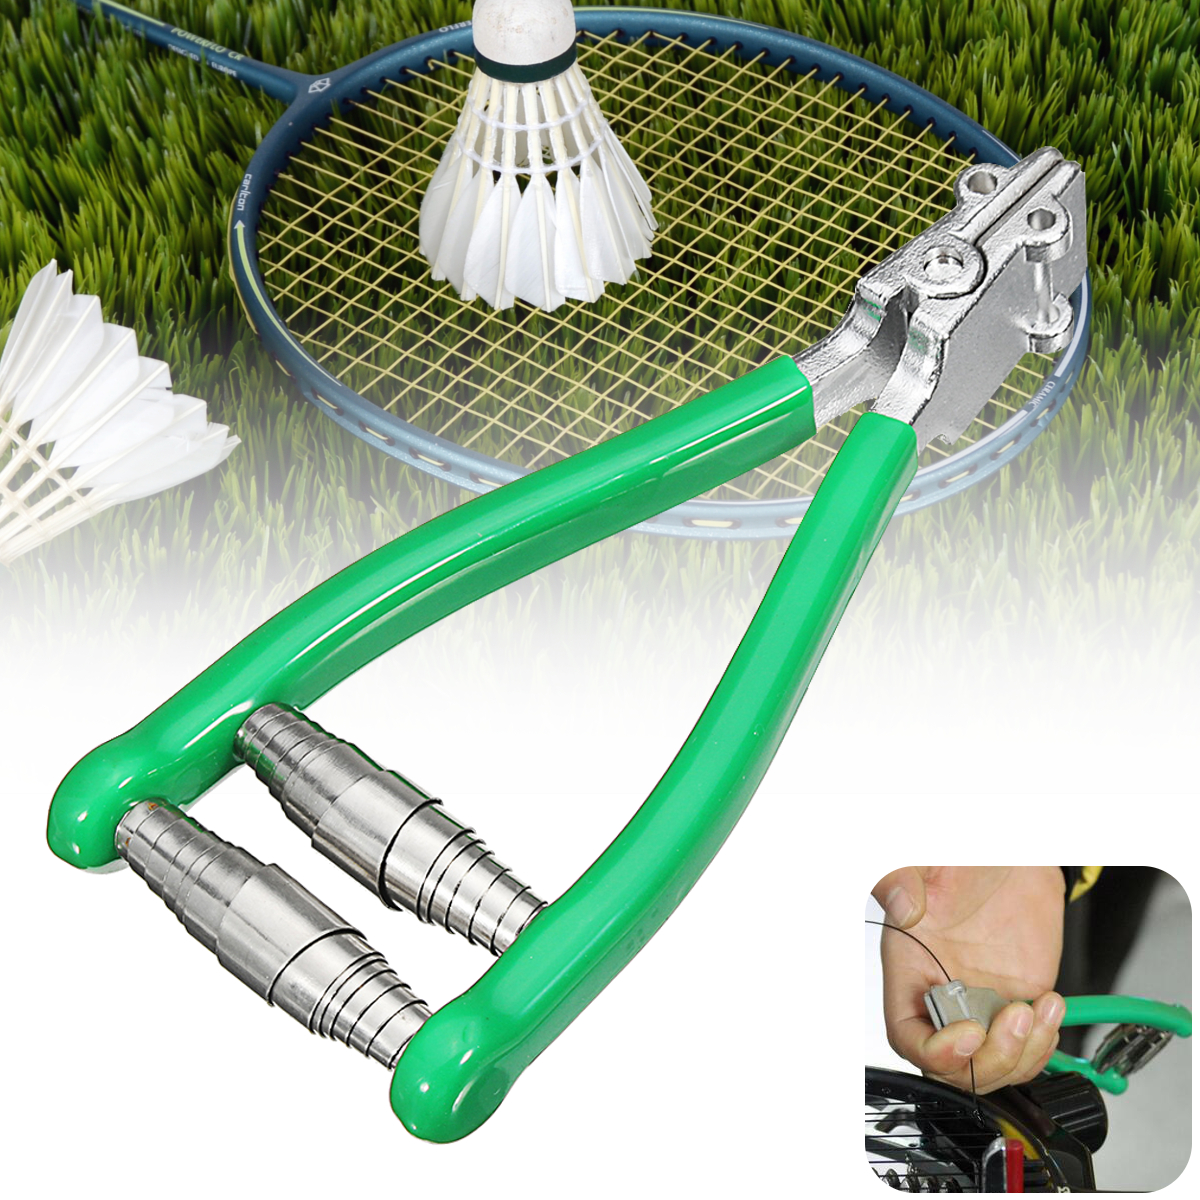 Tennis Starting Clamp Knot Stringing Tool Badminton Racket Racquet